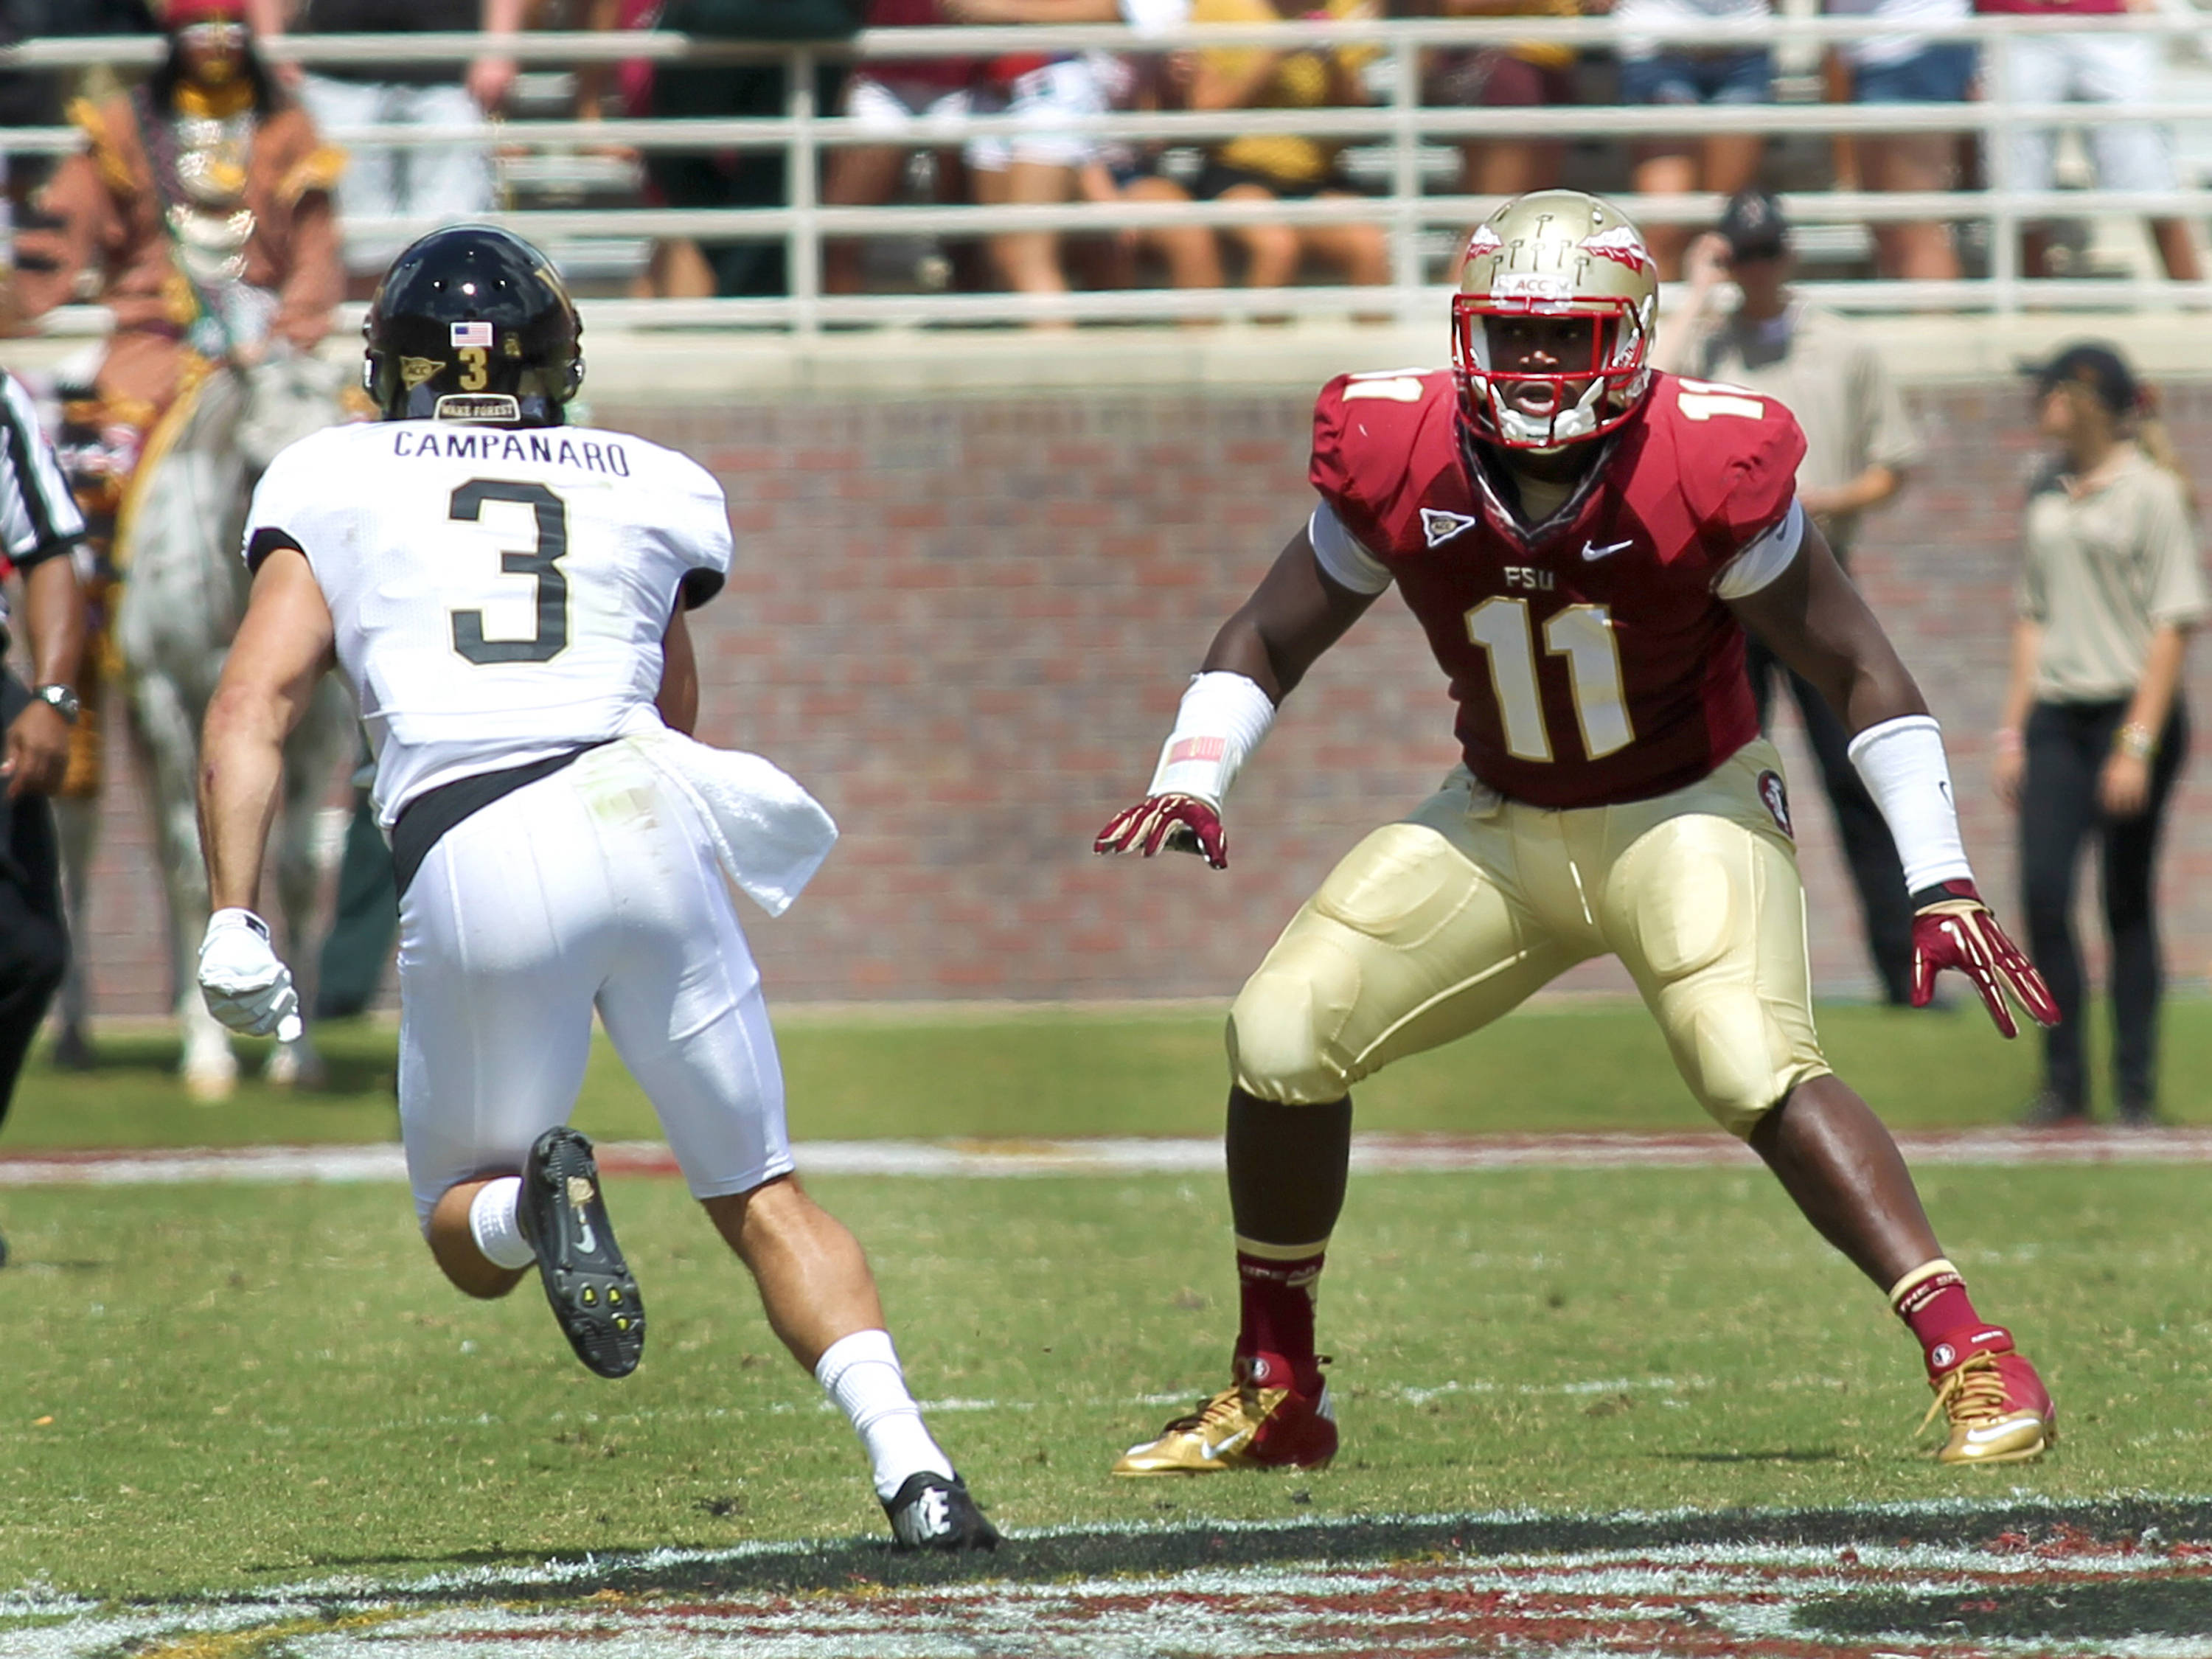 Vince Williams (11) in defensive coverage, FSU vs Wake Forest, 9/15/12 (Photo by Steve Musco)